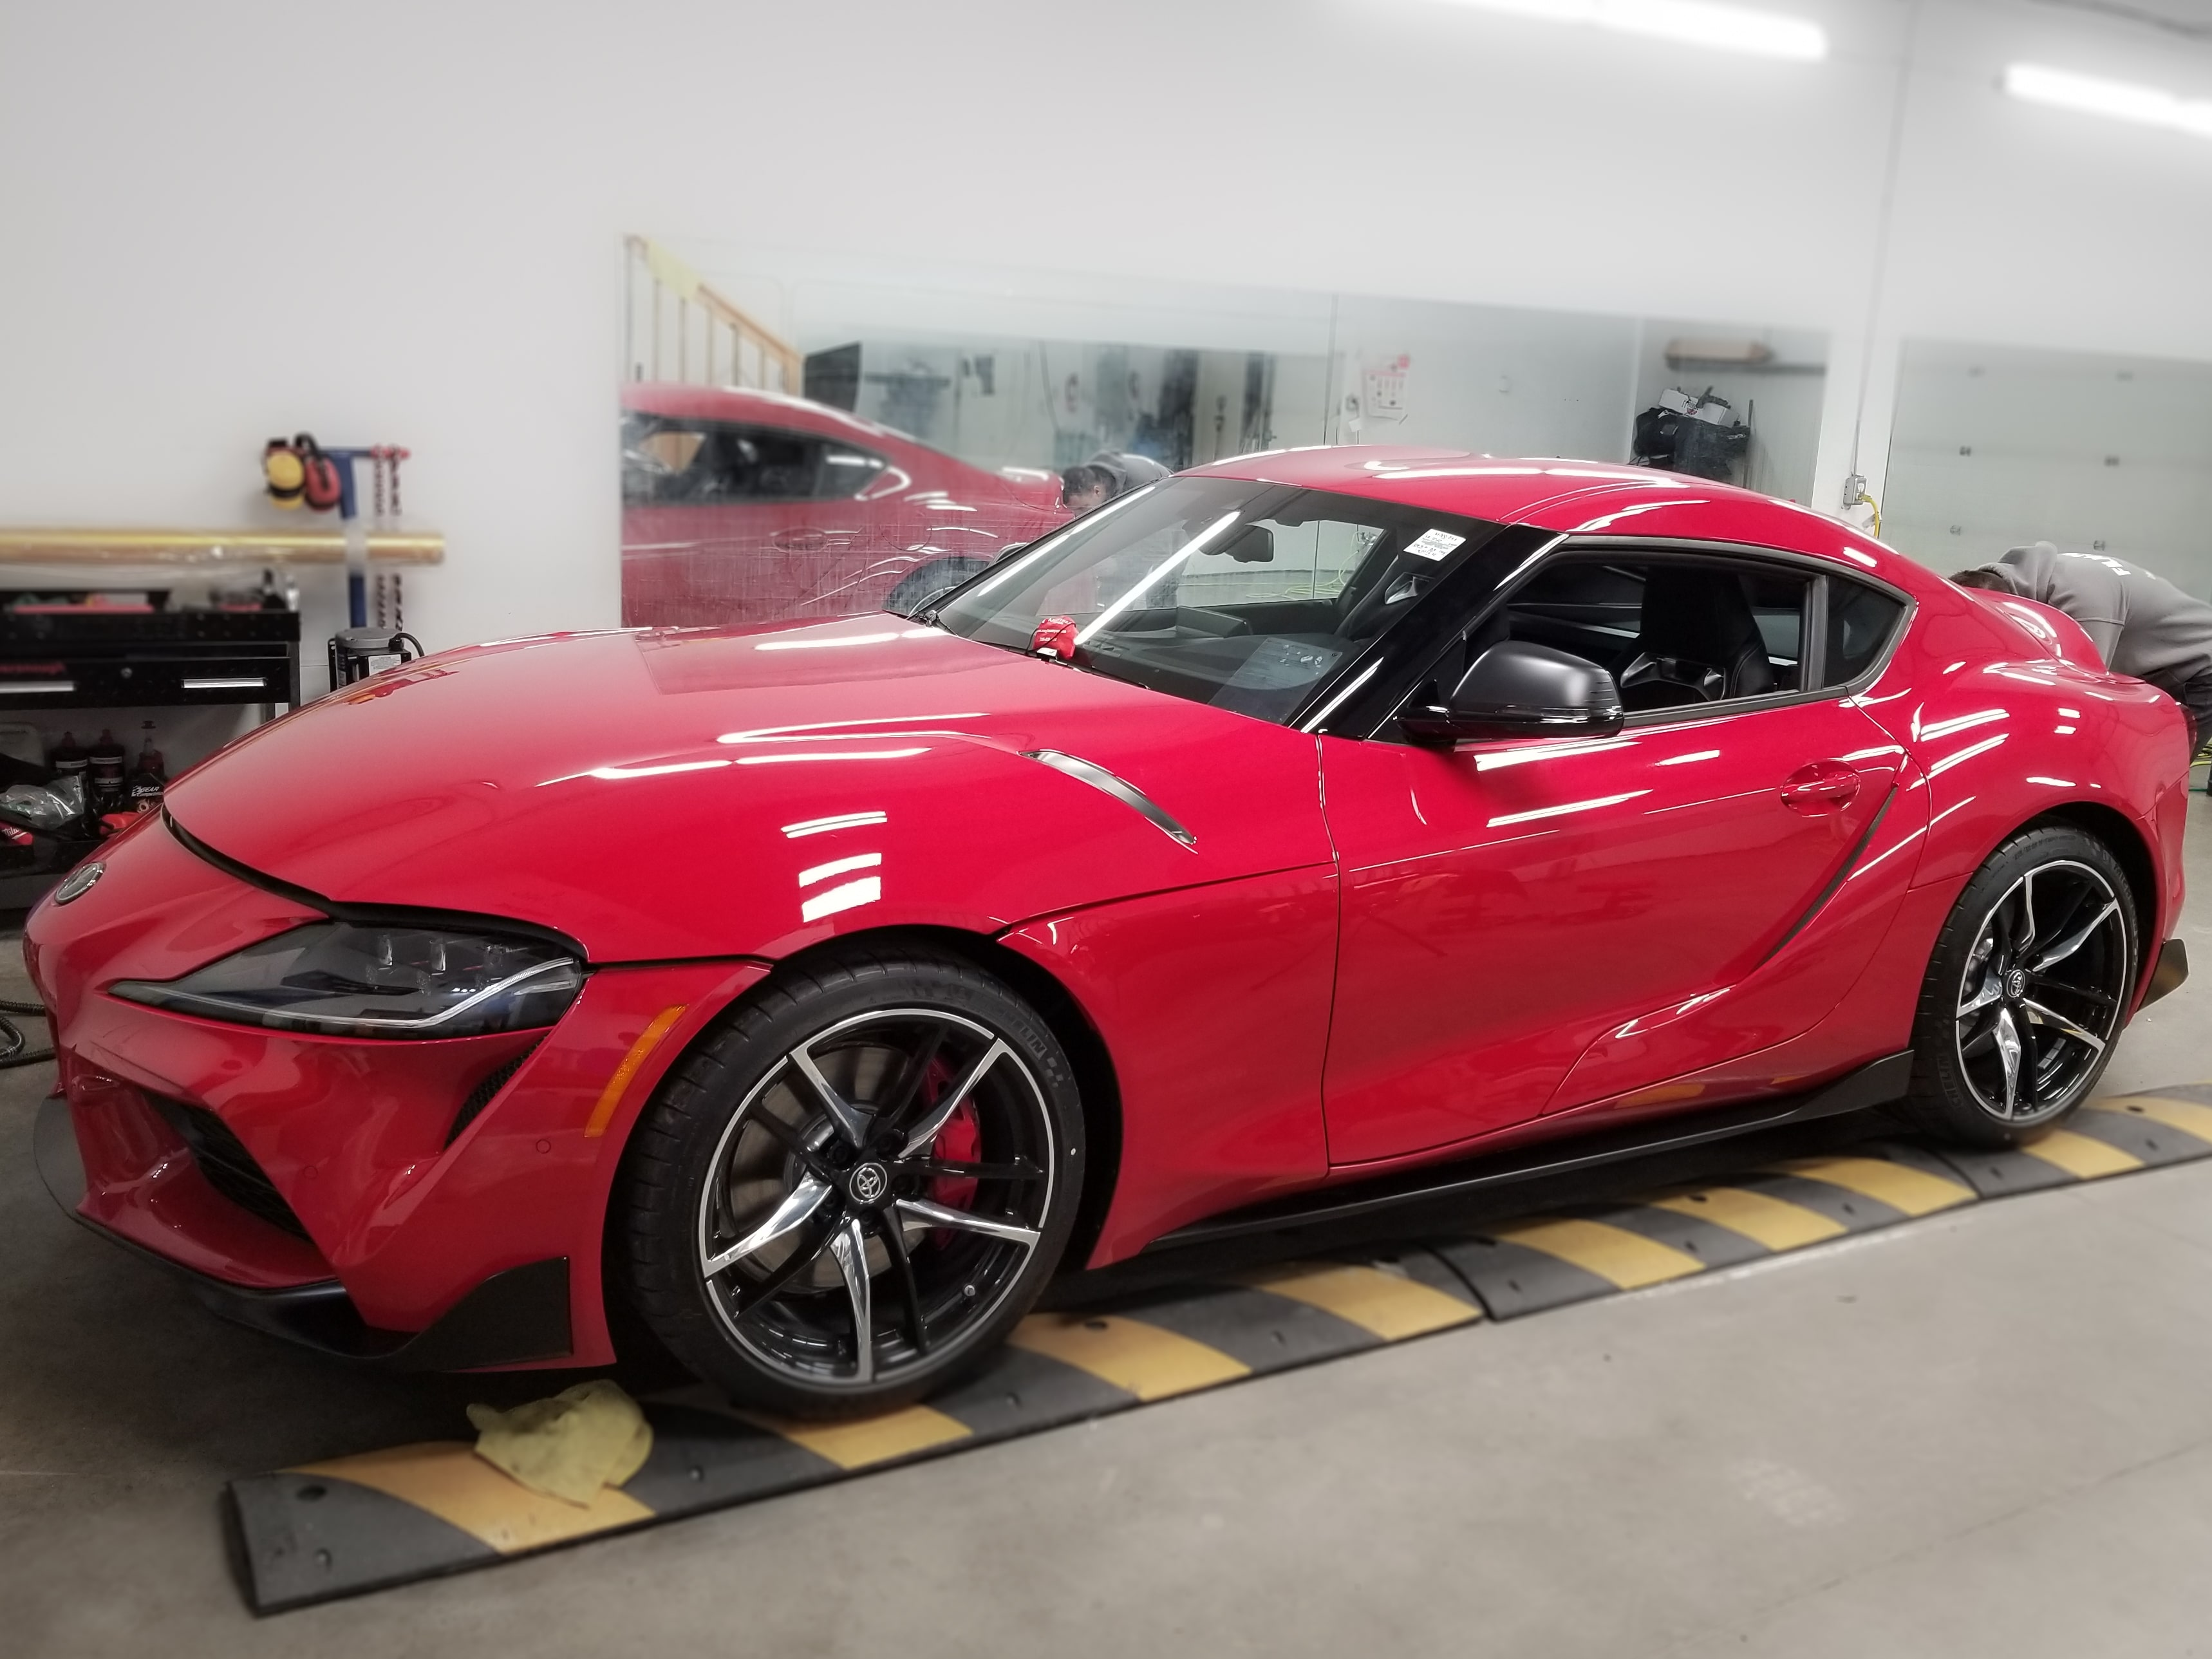 The Toyota Supra before vinyl wrap, it is red.